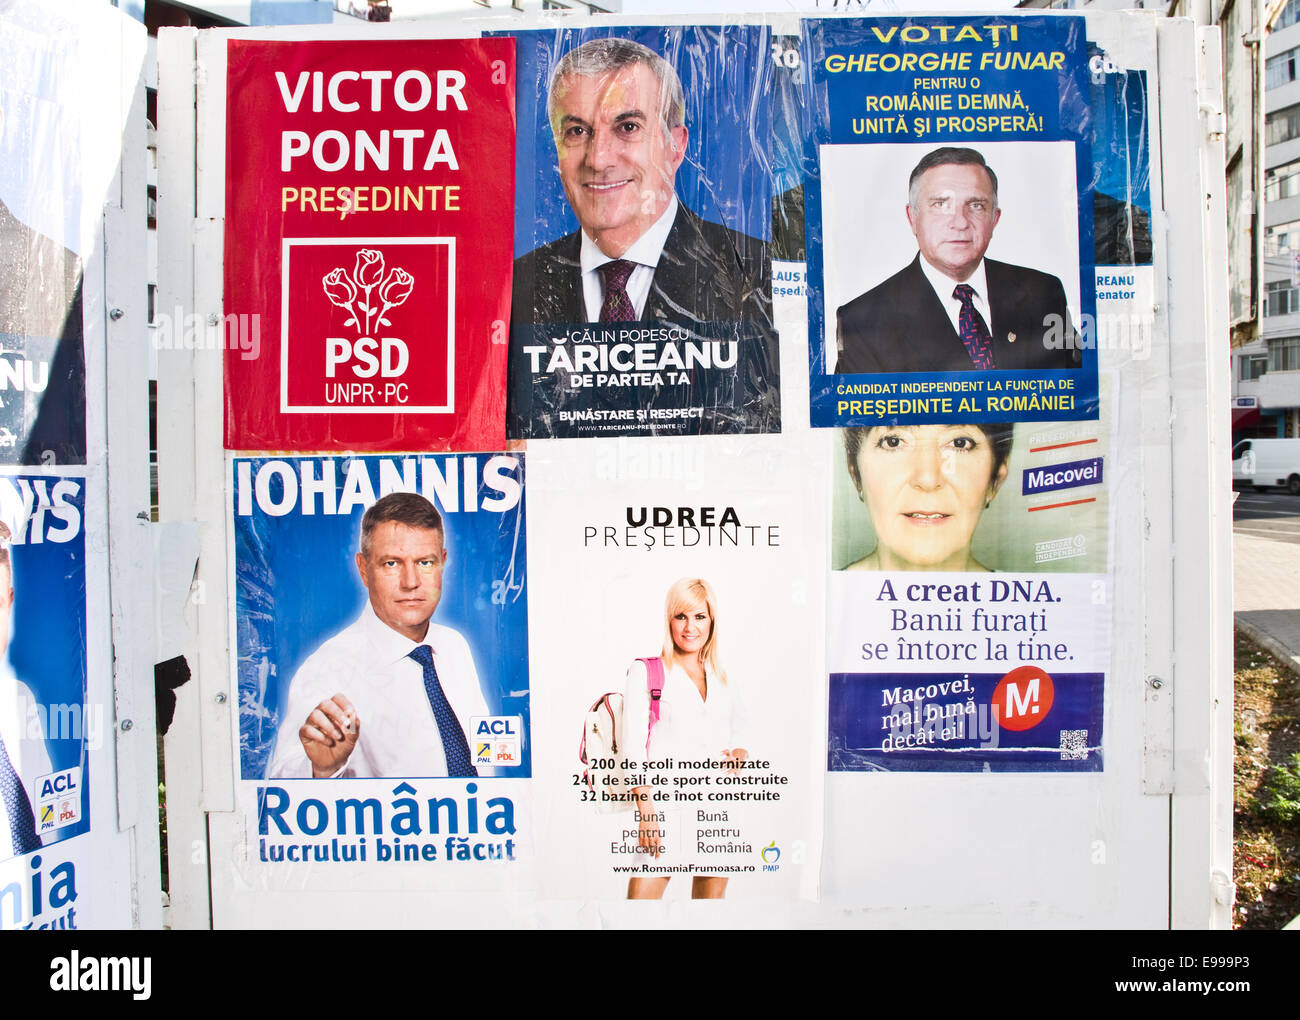 Campaign posters - Elections for President in Romania - Romanian presidential election November 2014 - Stock Image